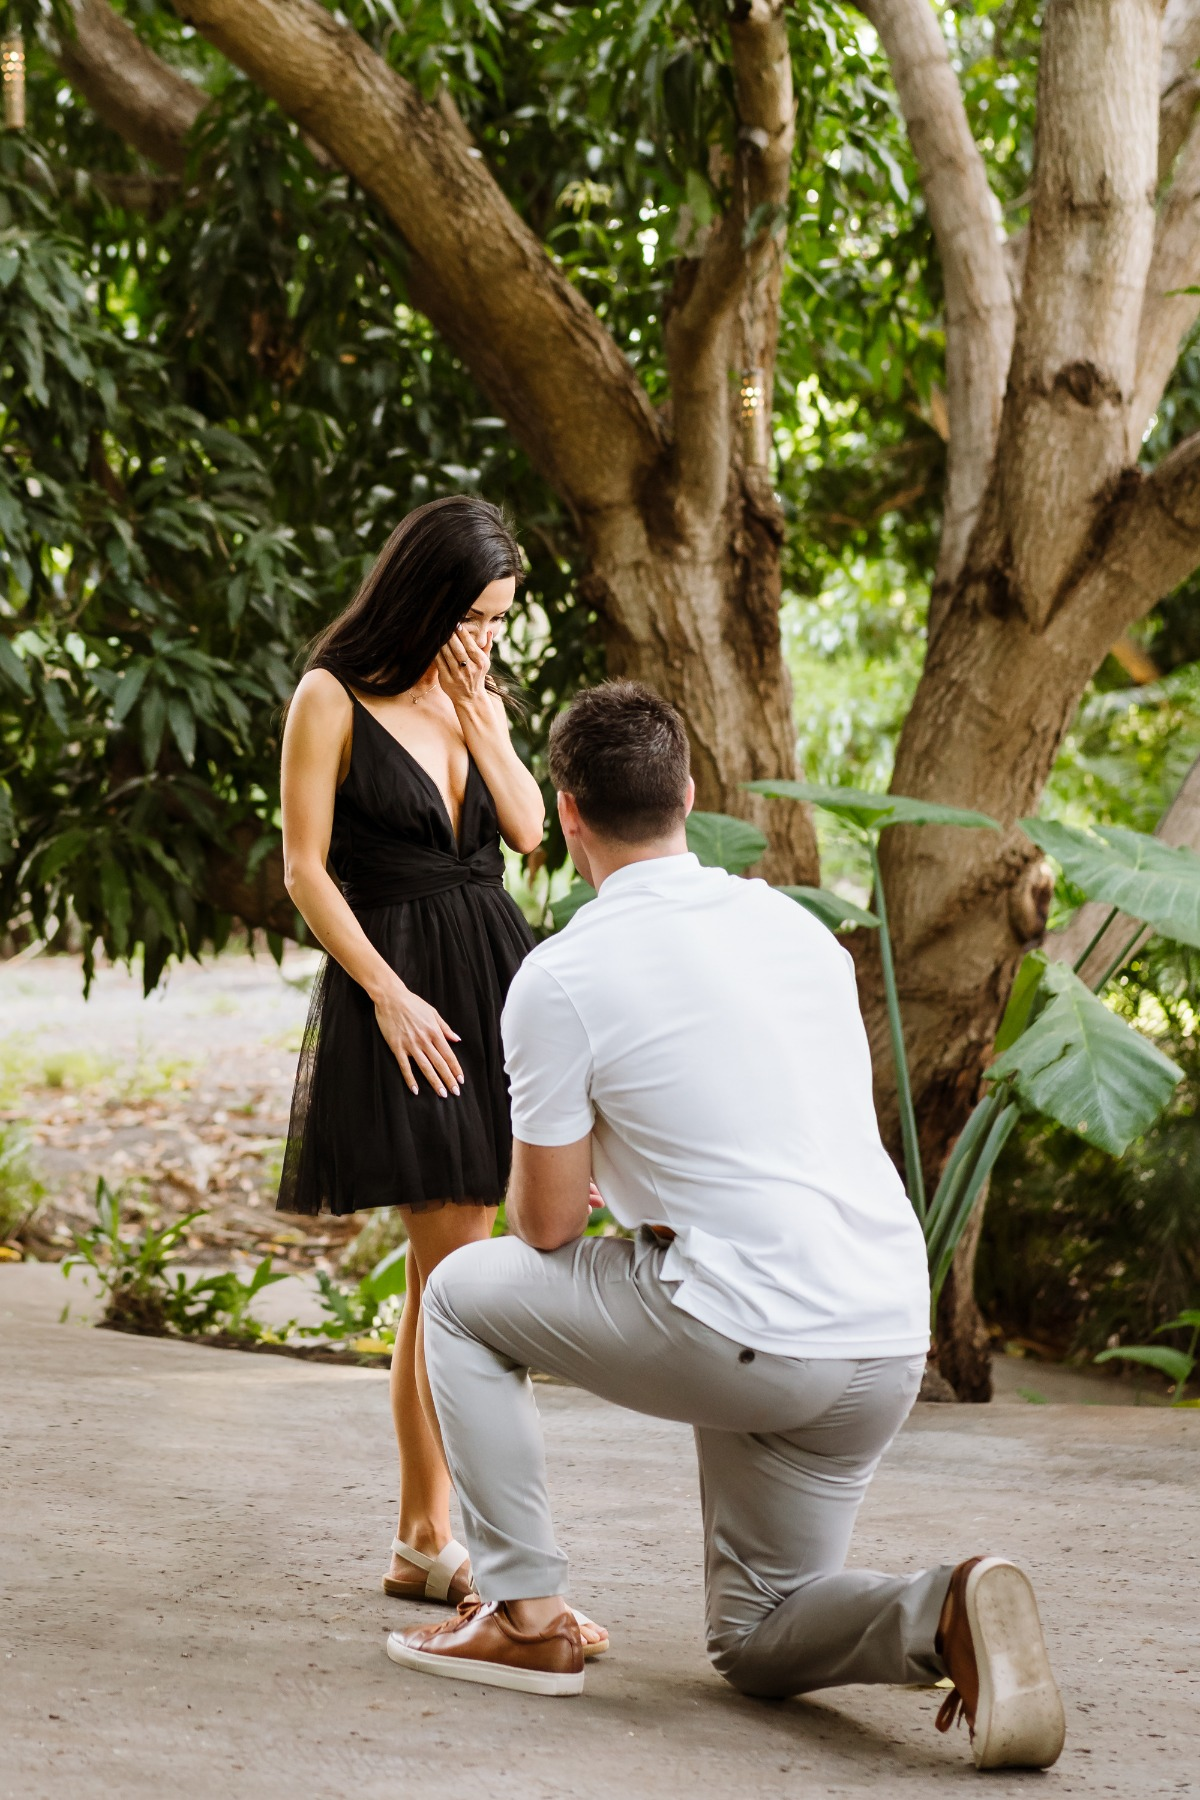 The Bachelor Contestant's Most Extravagant Maui Proposal